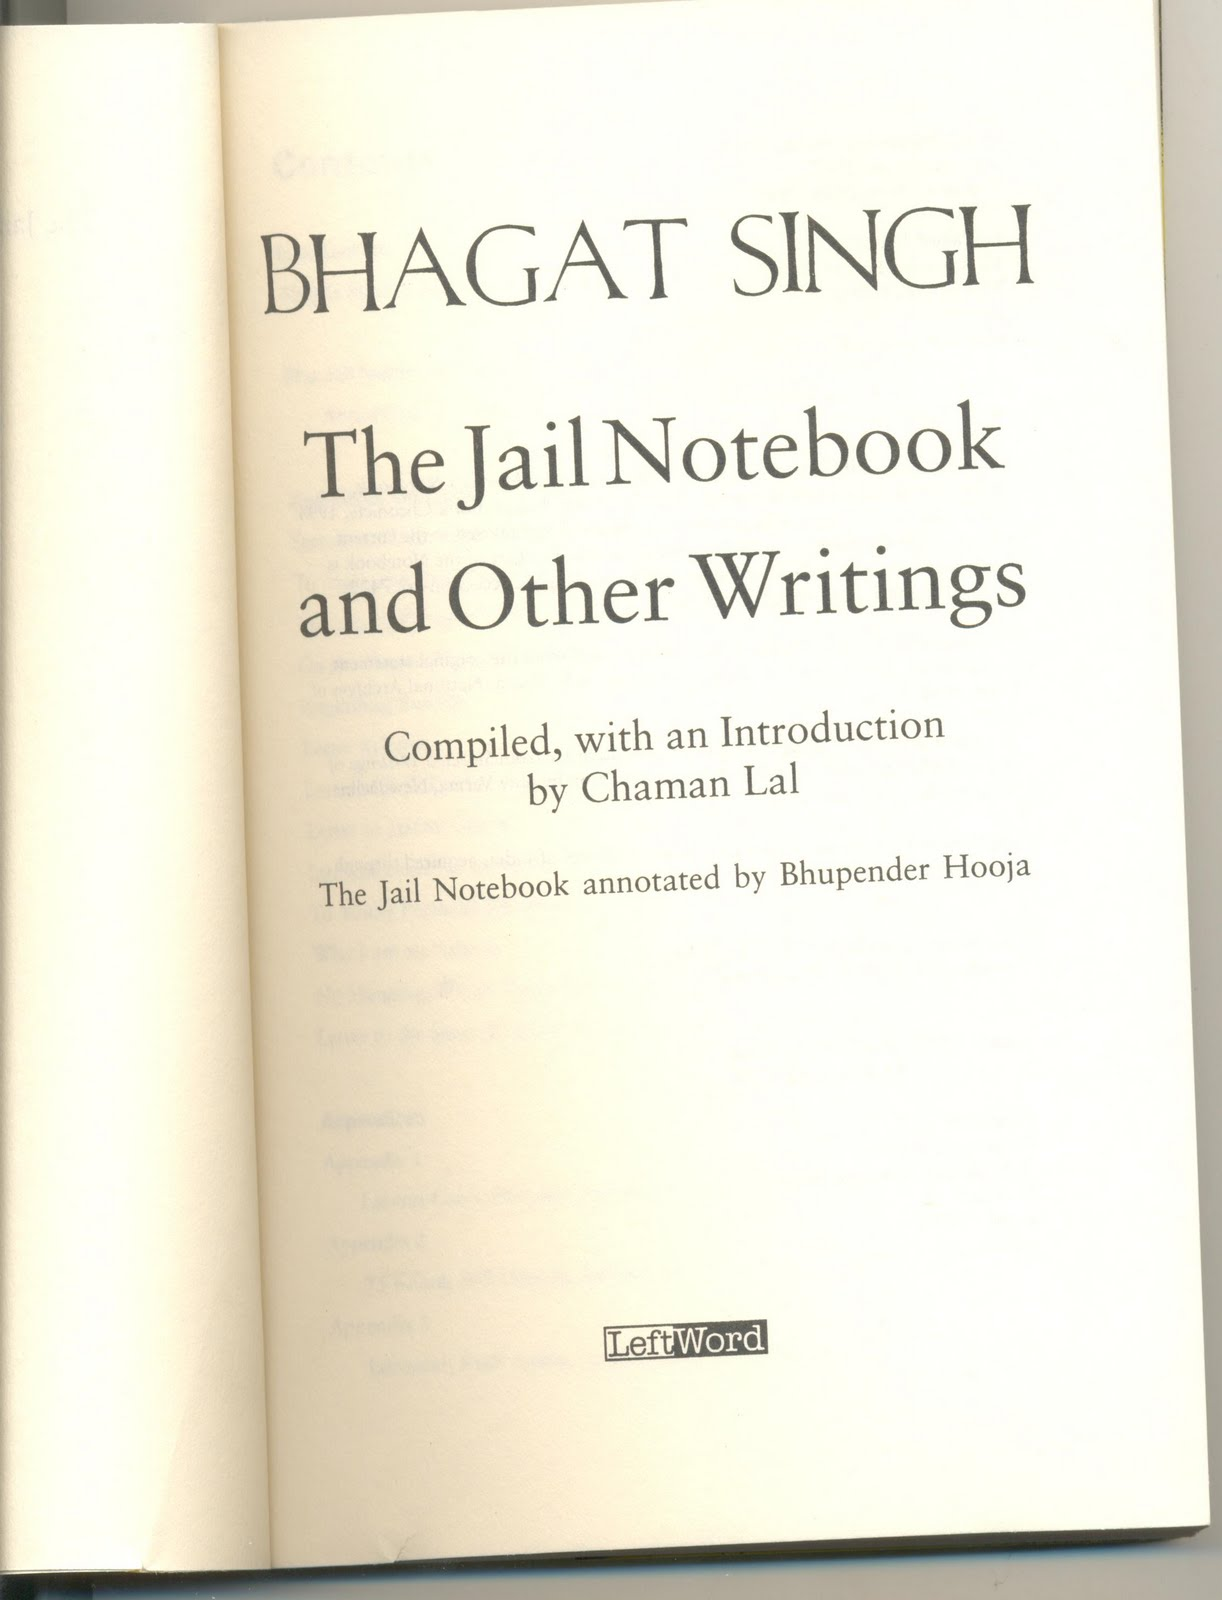 bhagat singh study chaman lal the jail notebook and other the jail notebook and other writings of bhagat singh